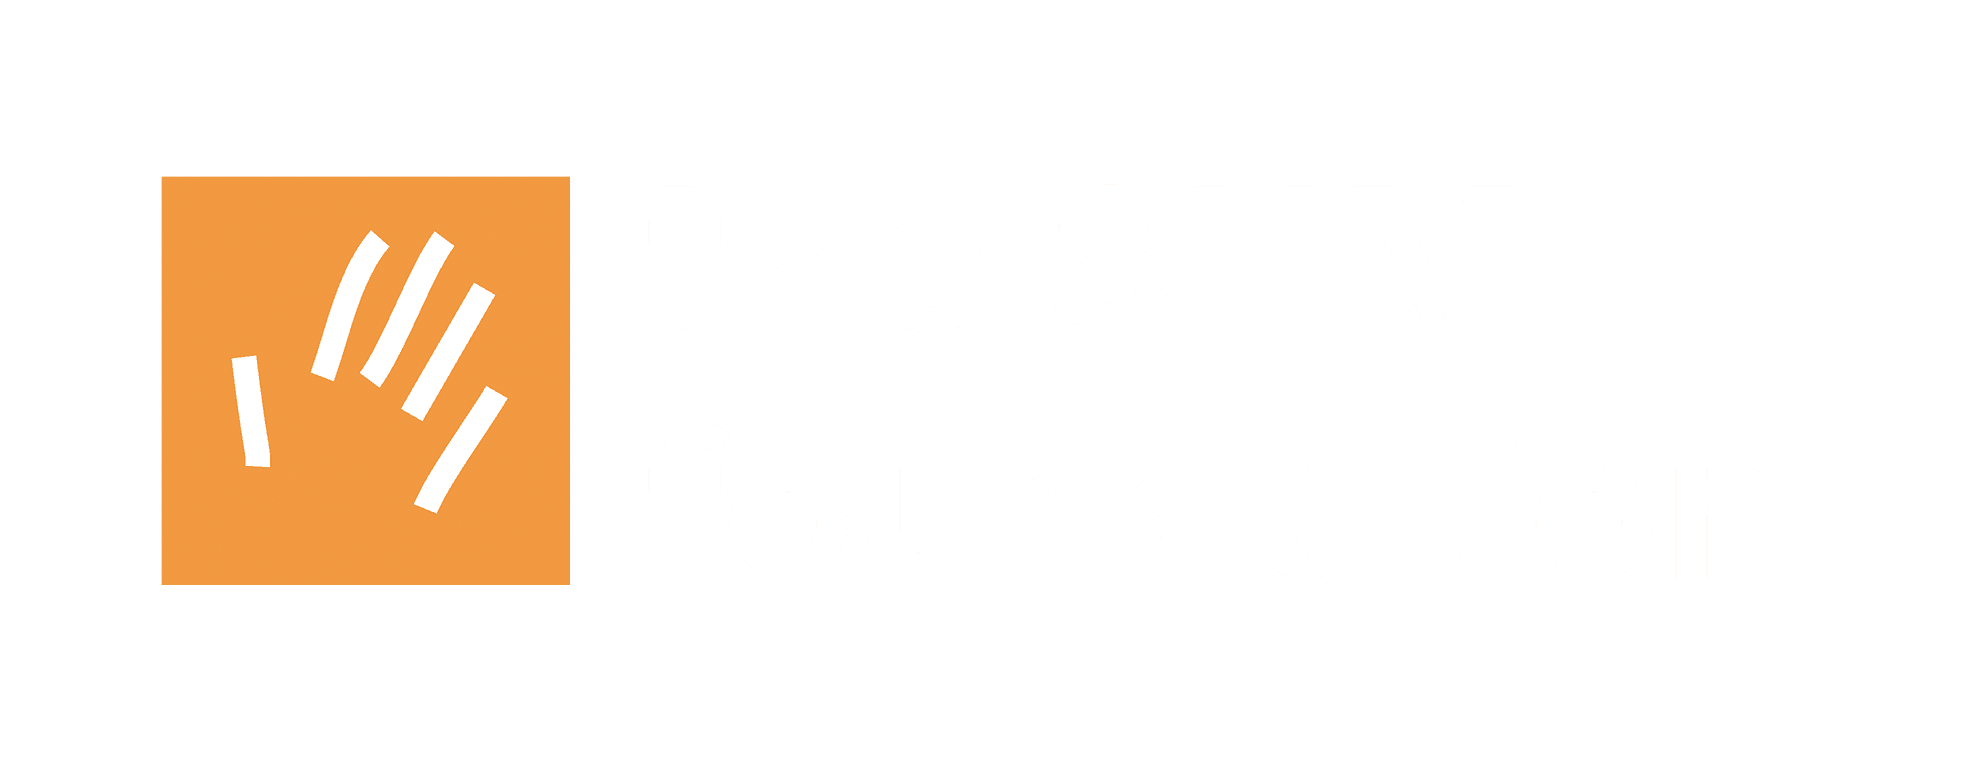 SHM Foundation logo